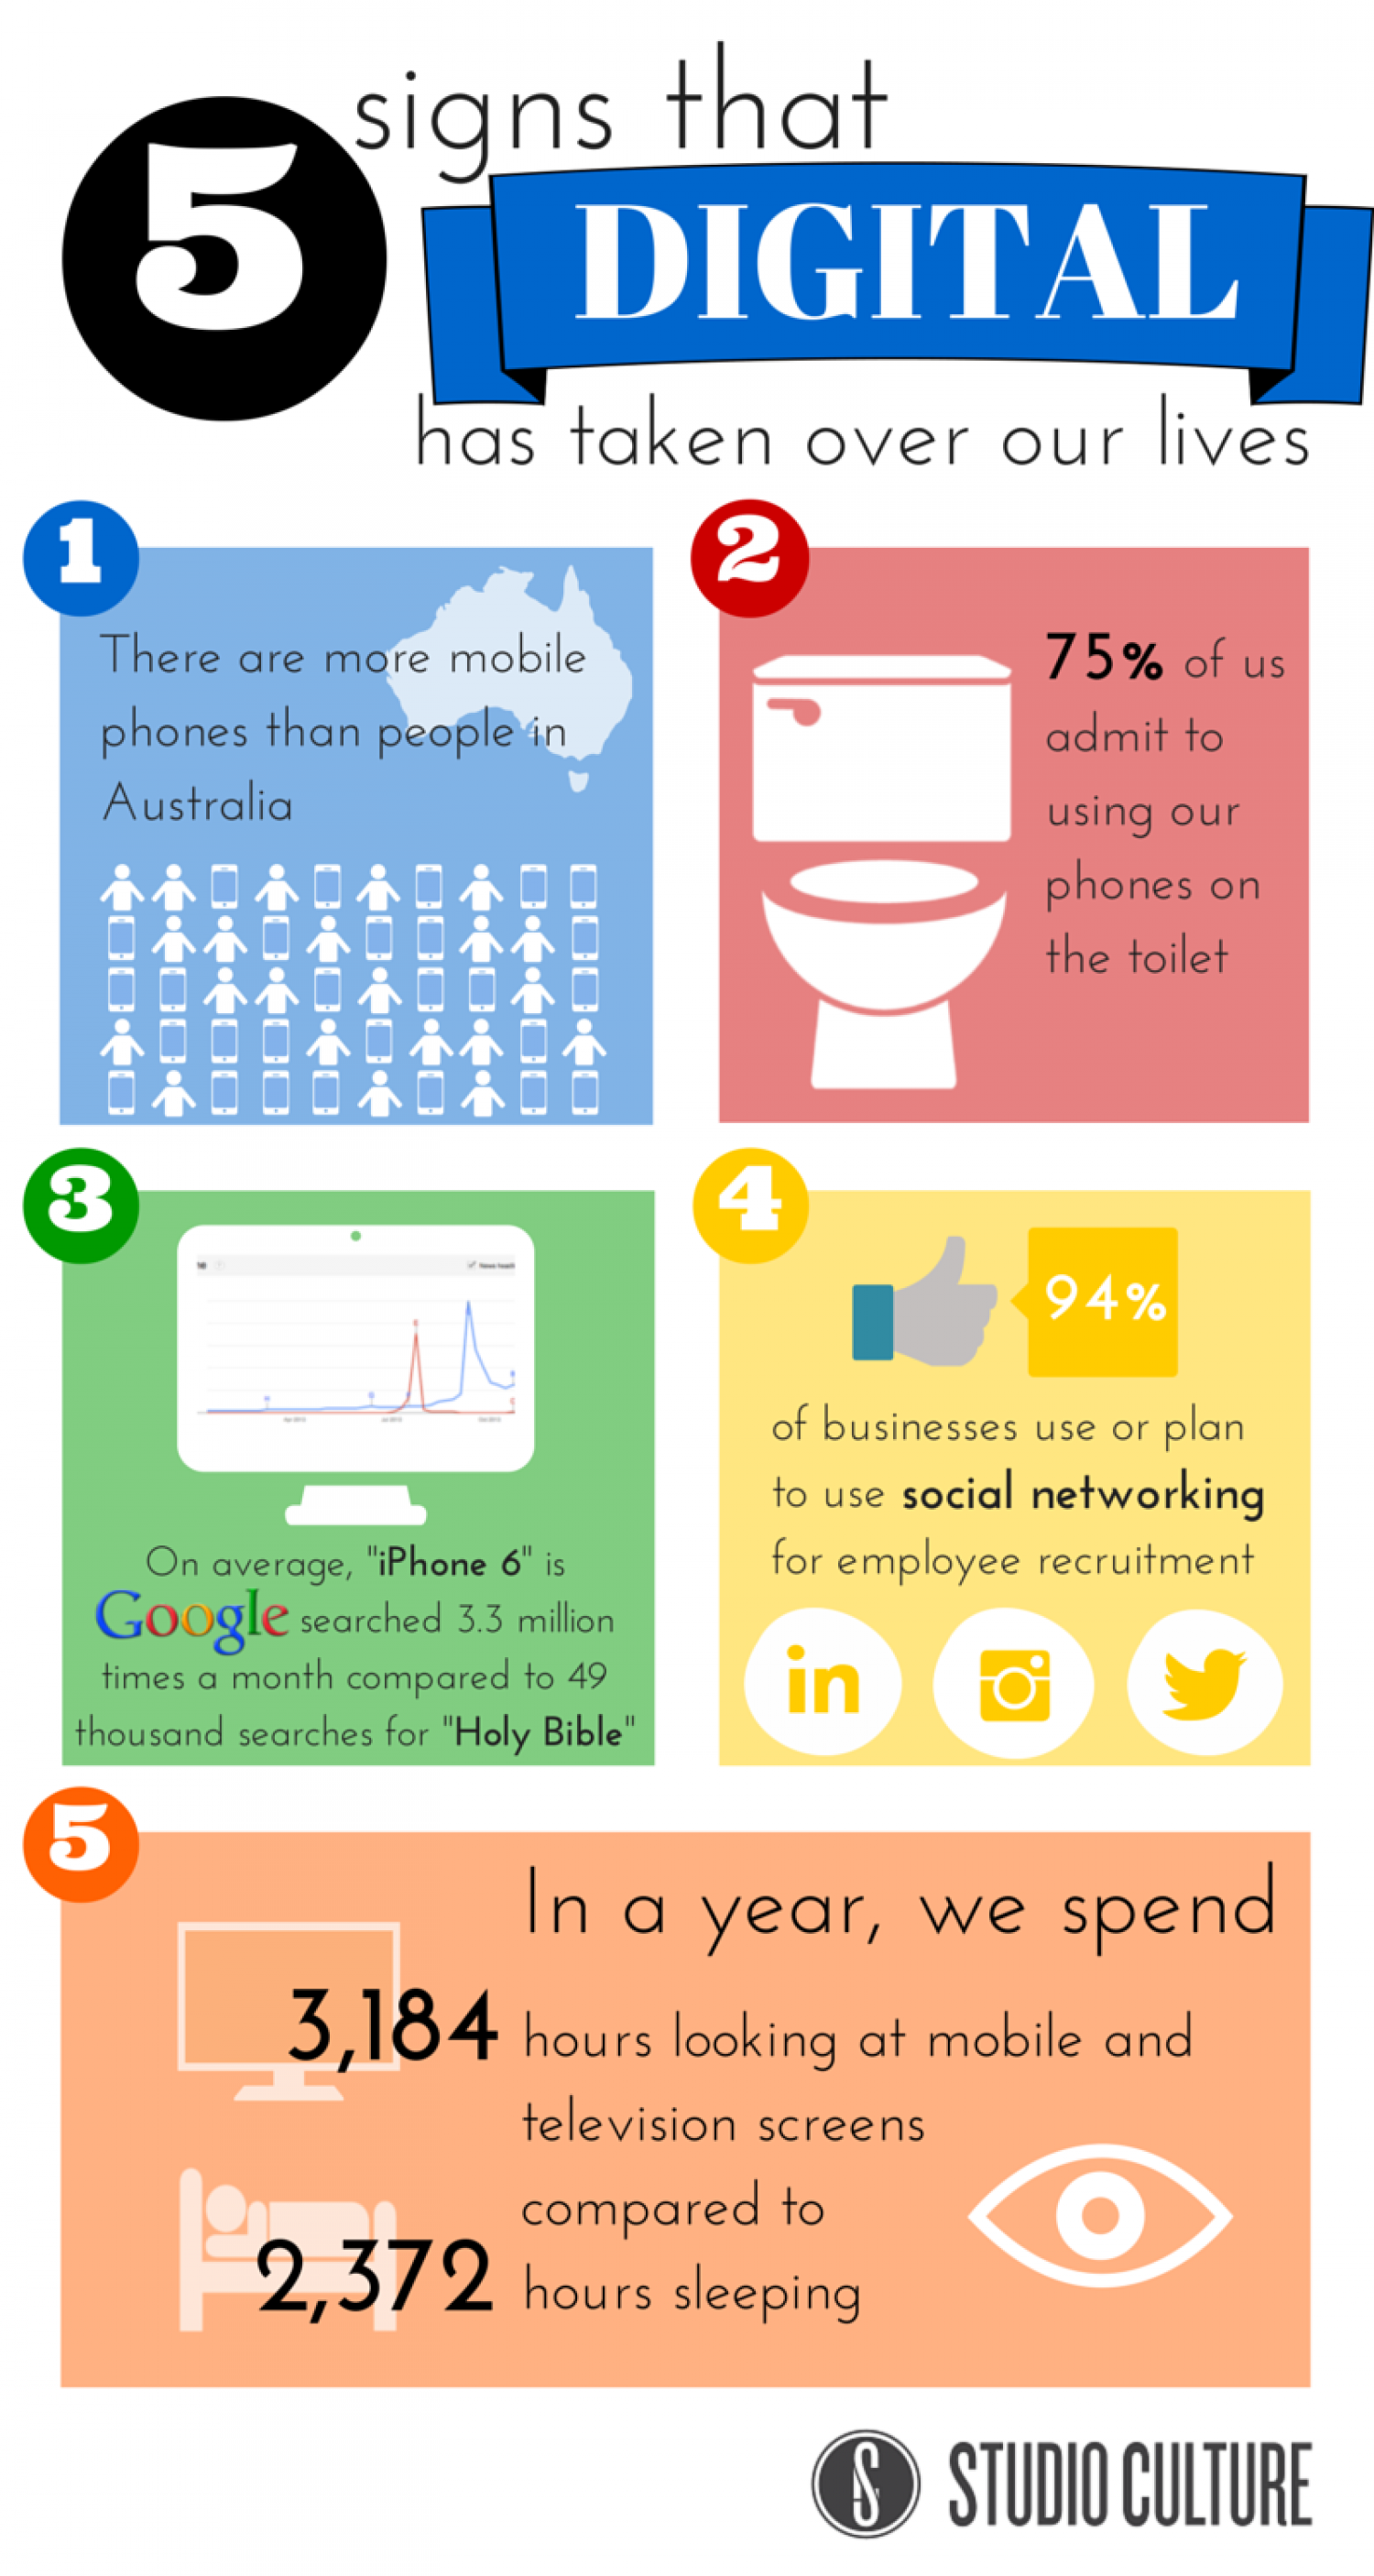 5 Signs That Digital Has Taken Over Our Lives Infographic